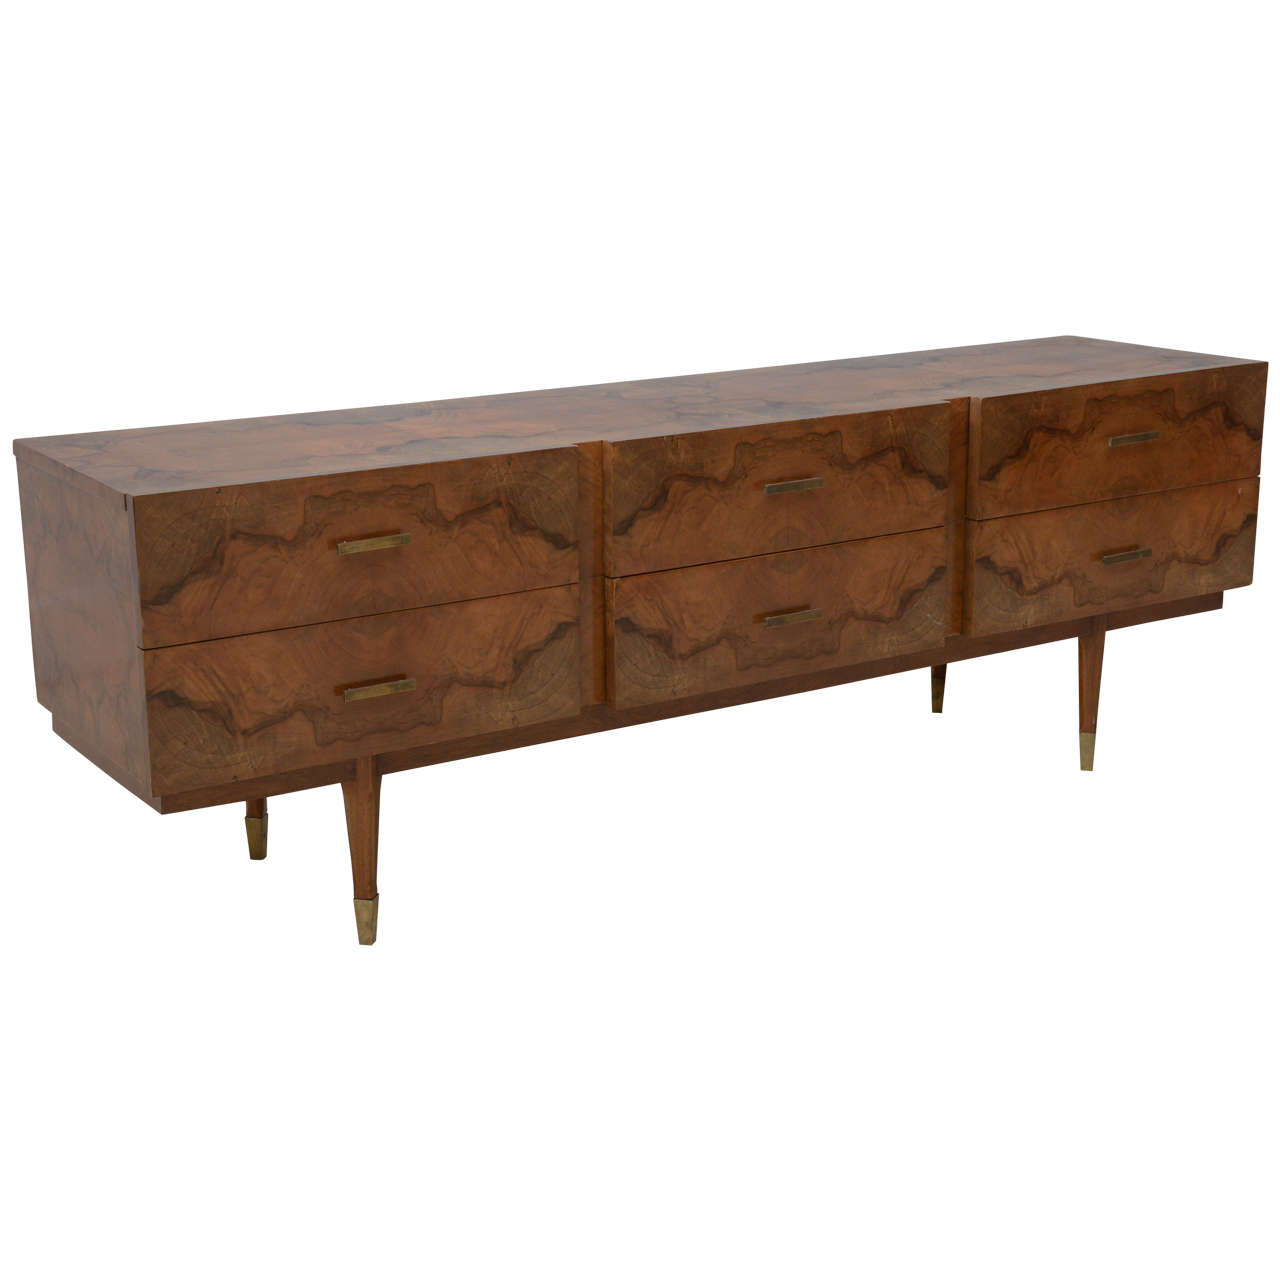 Italian Modern Root Wood Six-Drawer Buffet or Chest of Drawers, Style of Ponti For Sale